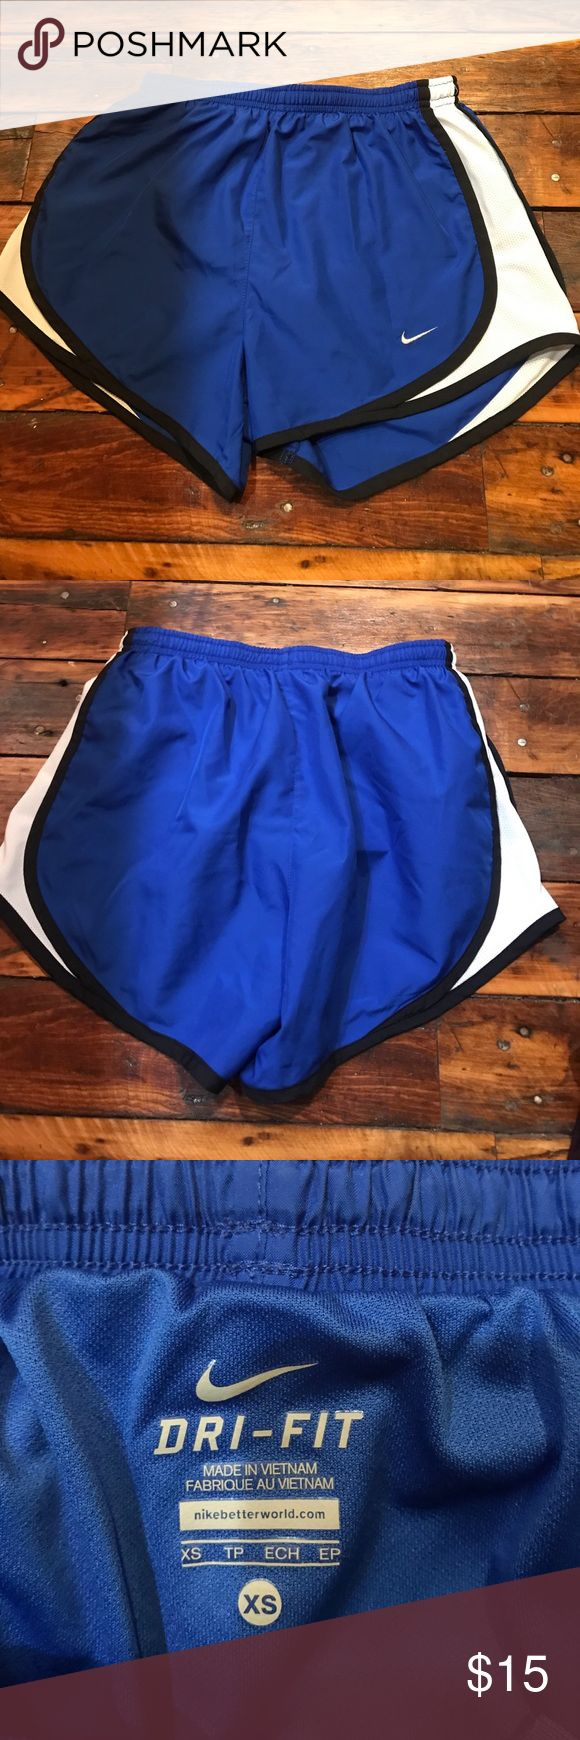 Women's Nike Tempo Running Shorts XS Women's Nike Tempo Running Shorts in royal blue with black and white on sides. In great condition, only worn a handful of times Nike Shorts